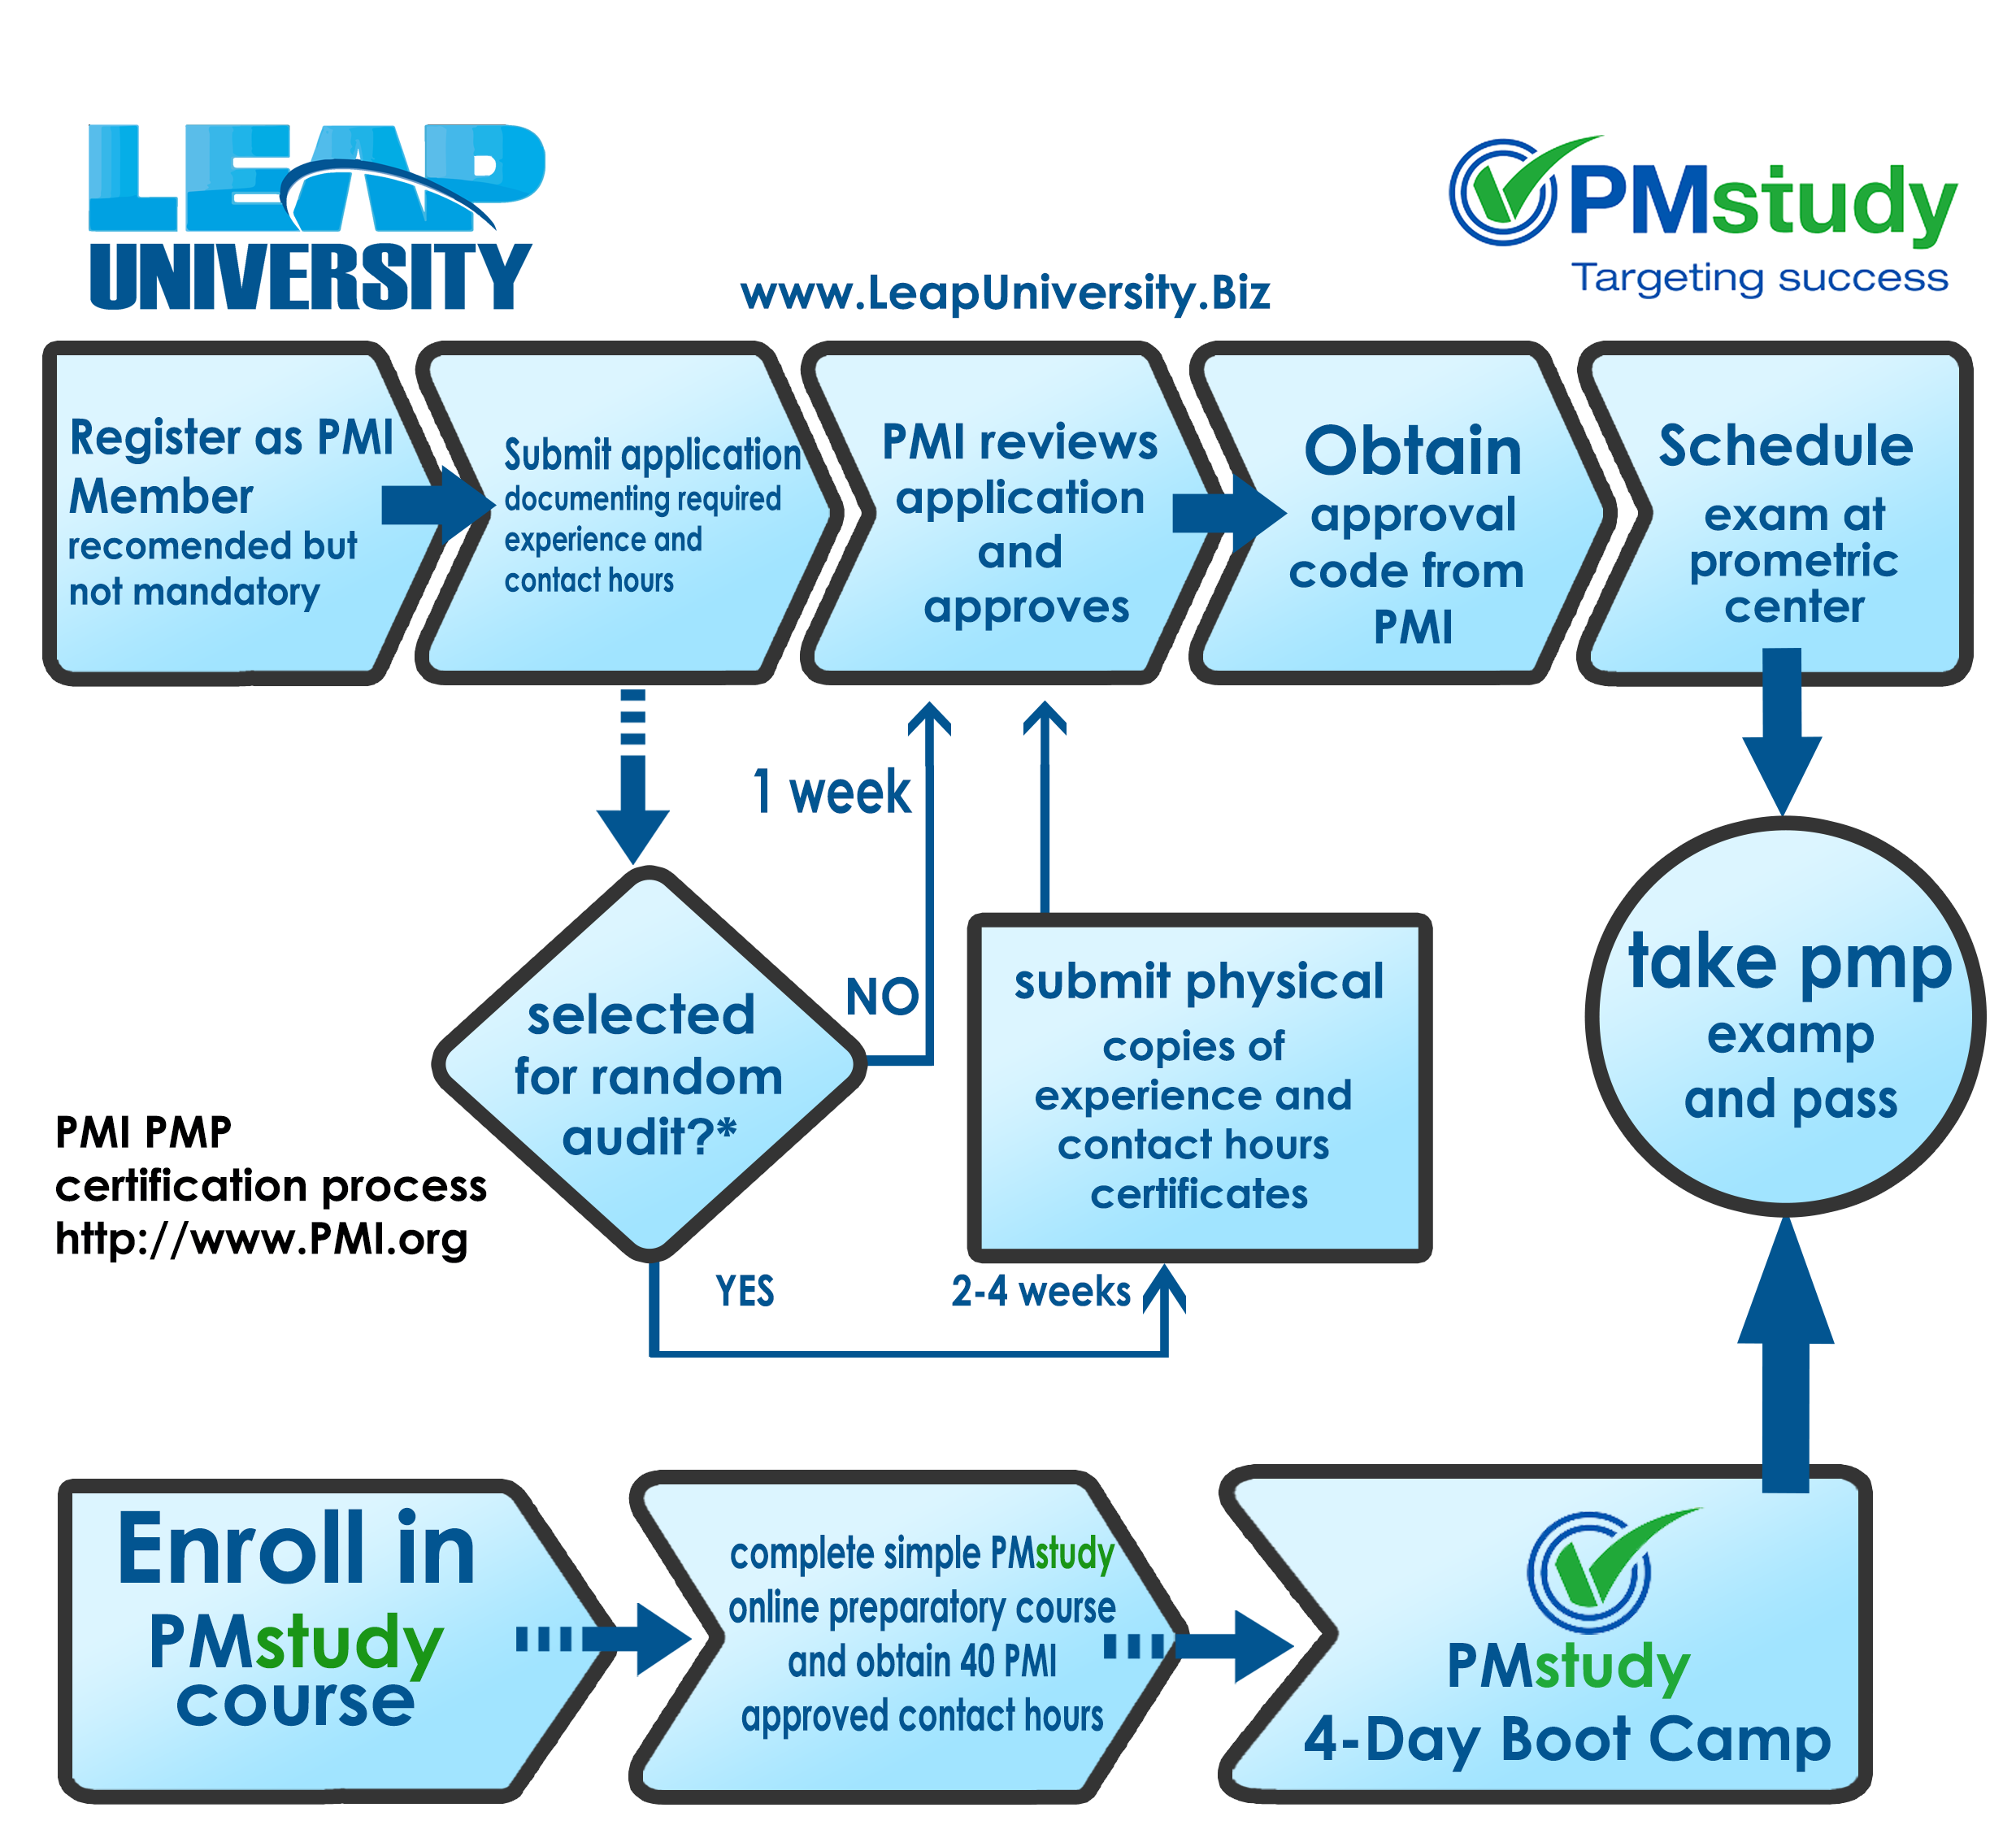 Pmstudy pmp certification process leap university project pmstudy pmp certification process leap university 1betcityfo Image collections